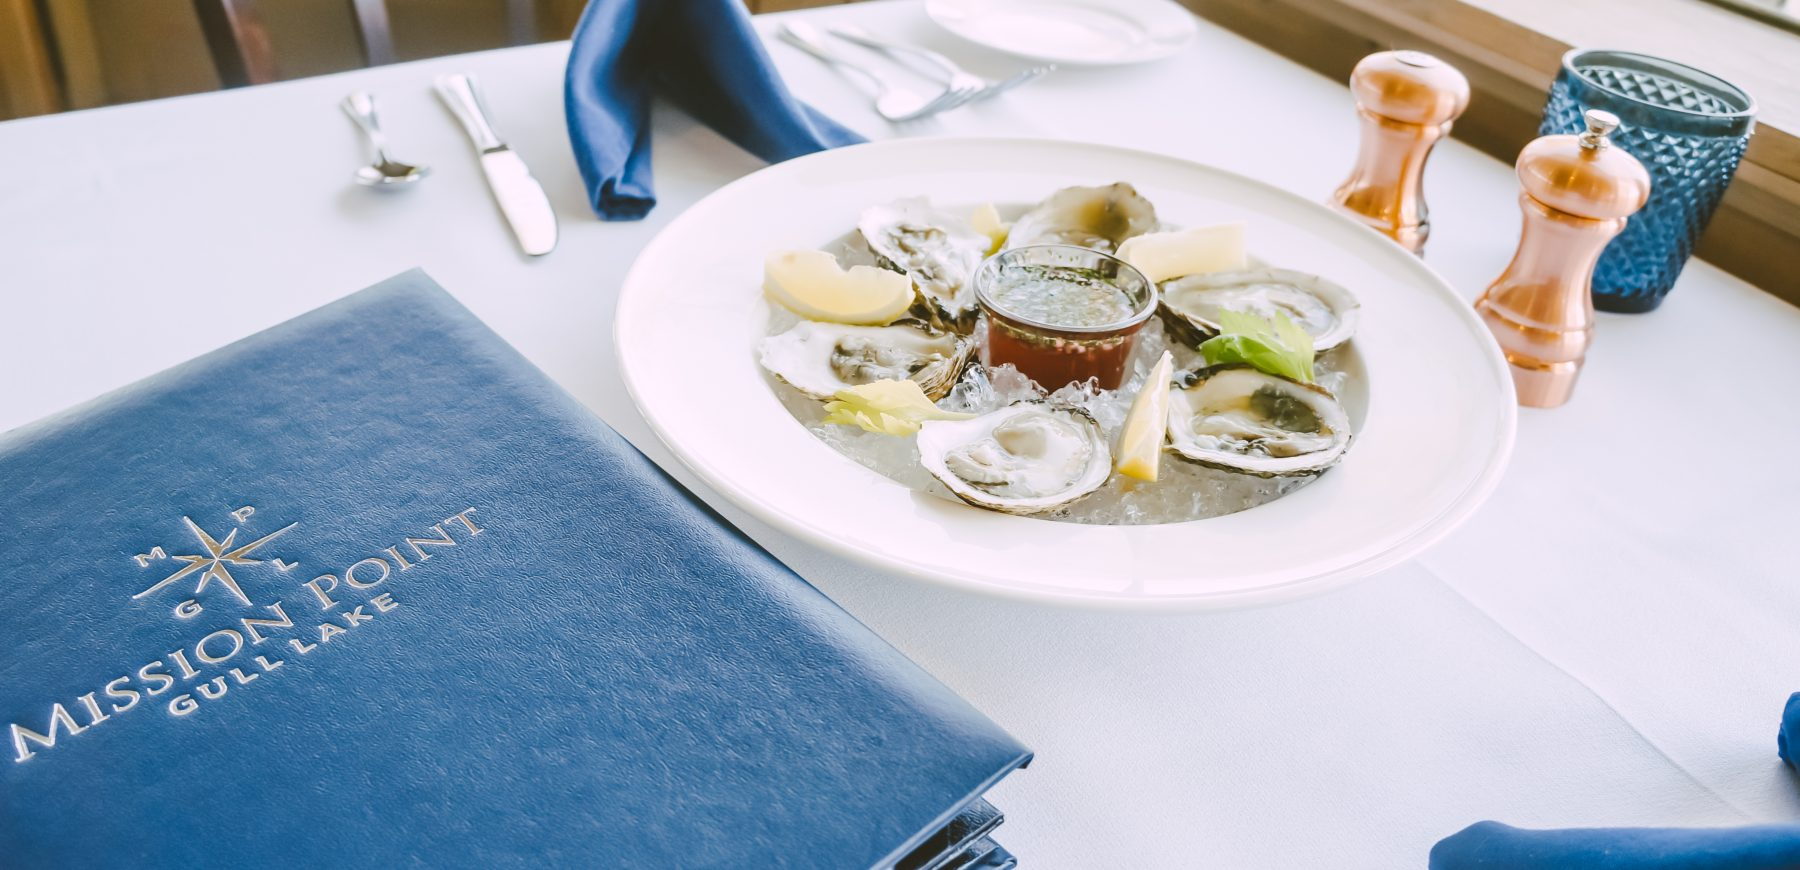 plate of oysters on a table at a restaurant